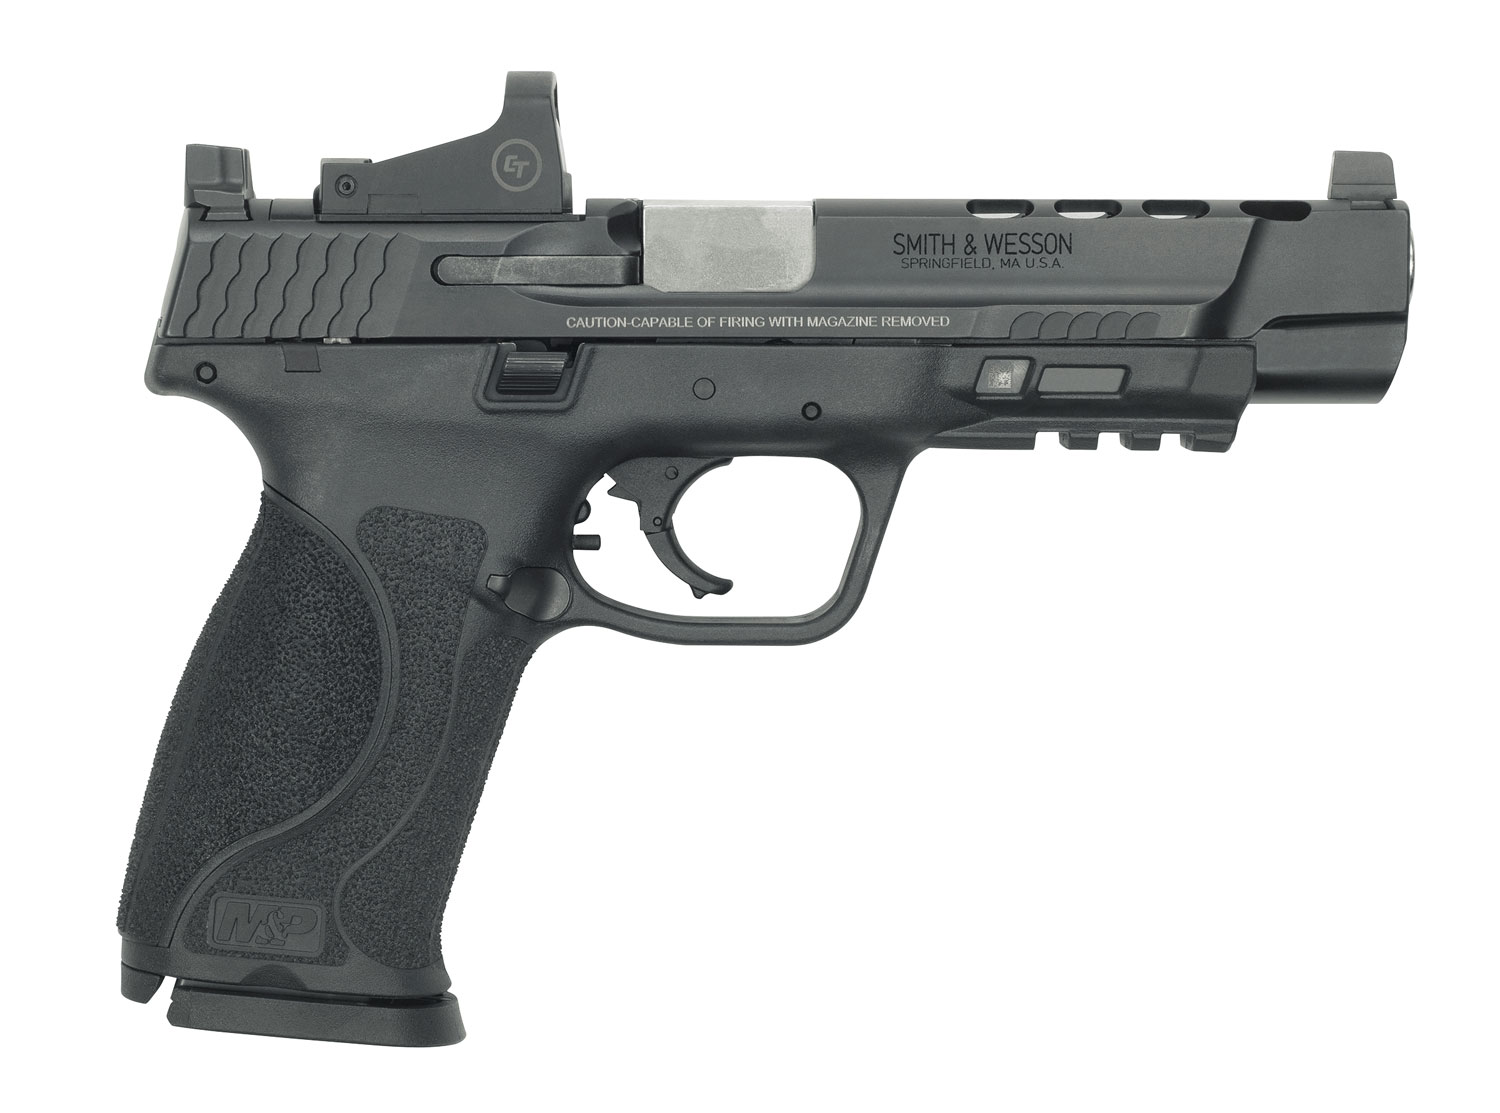 Smith & Wesson 12470 Performance Center M&P M2.0 9mm Luger 5